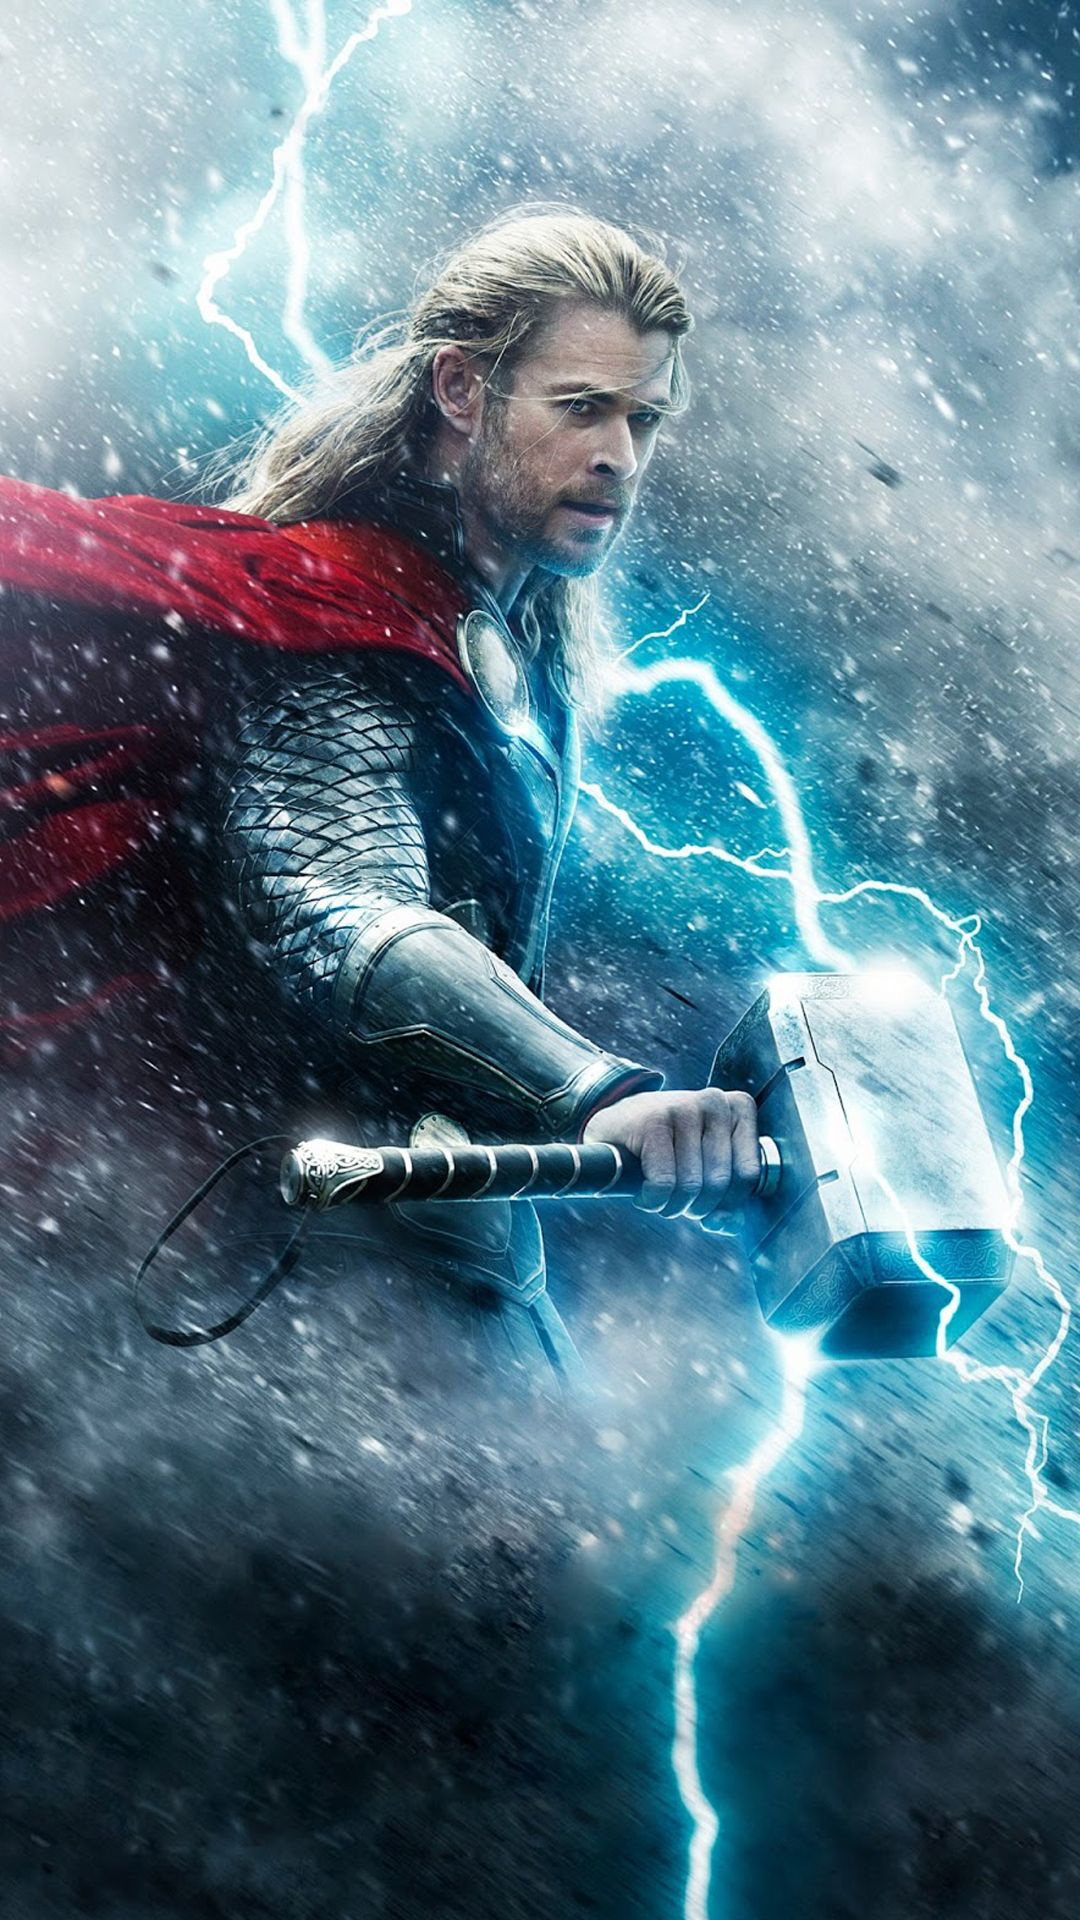 thor htc hd wallpaper | < hero gumbo > | pinterest | thor, hd